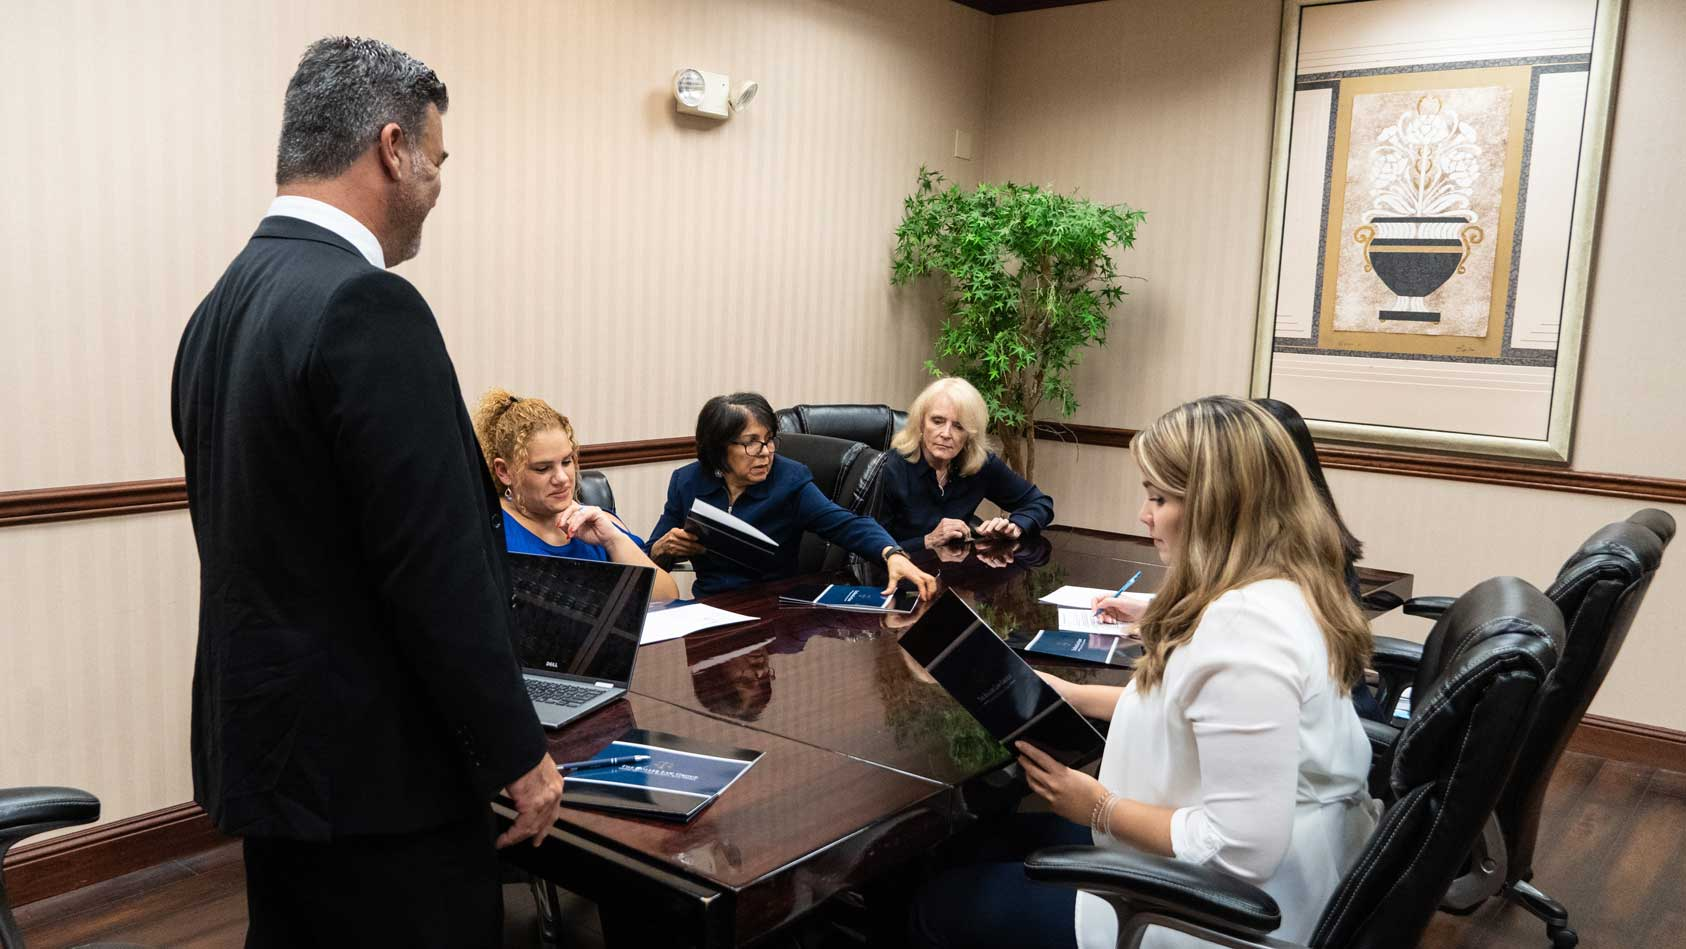 Professional meeting of lawyers at the conference room